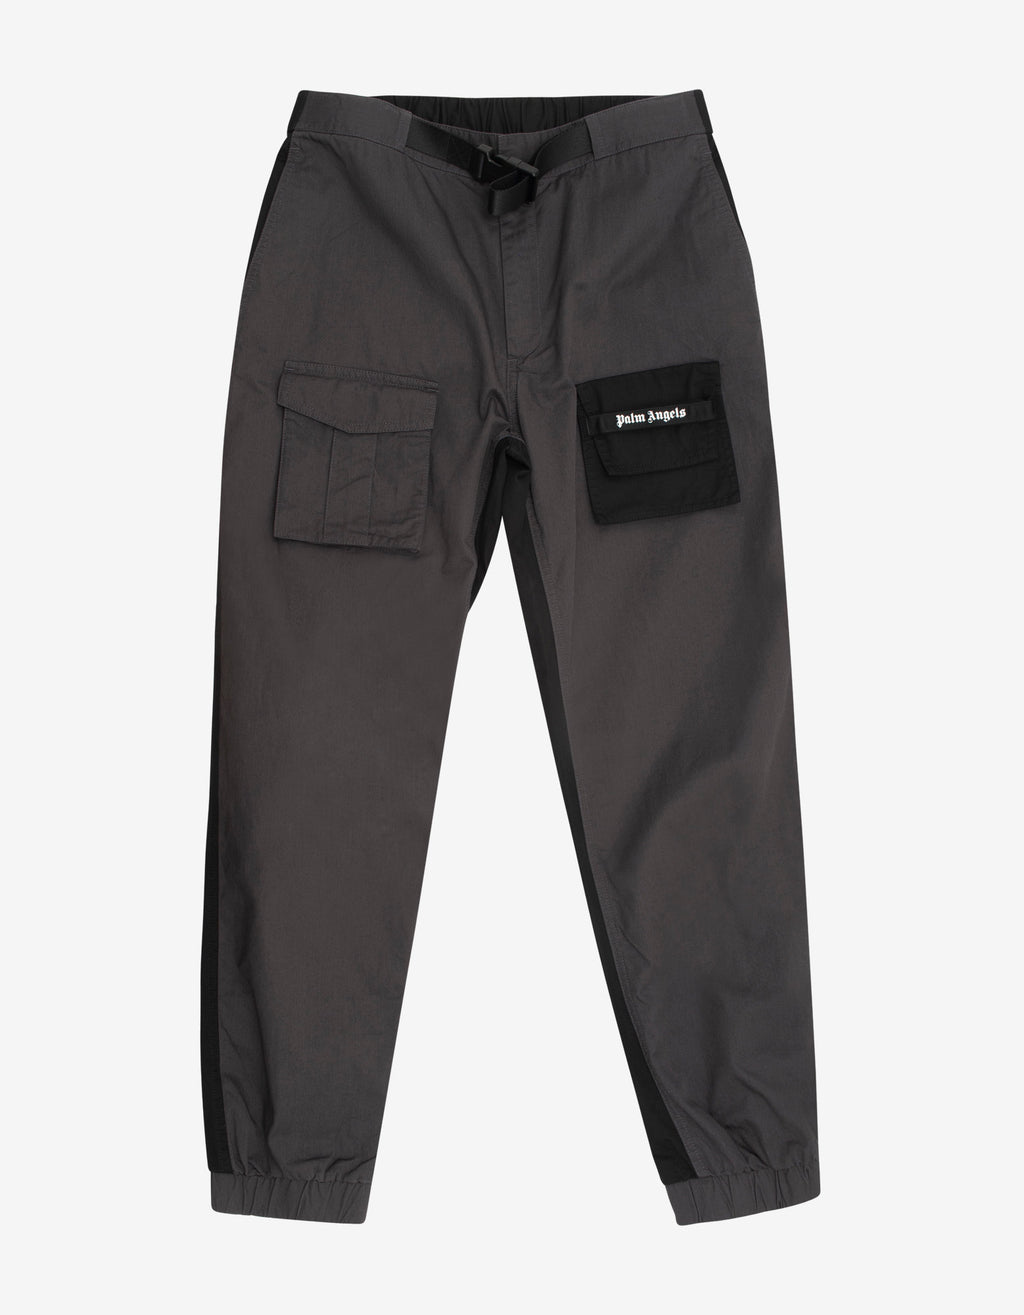 Two-Tone Cargo Pants